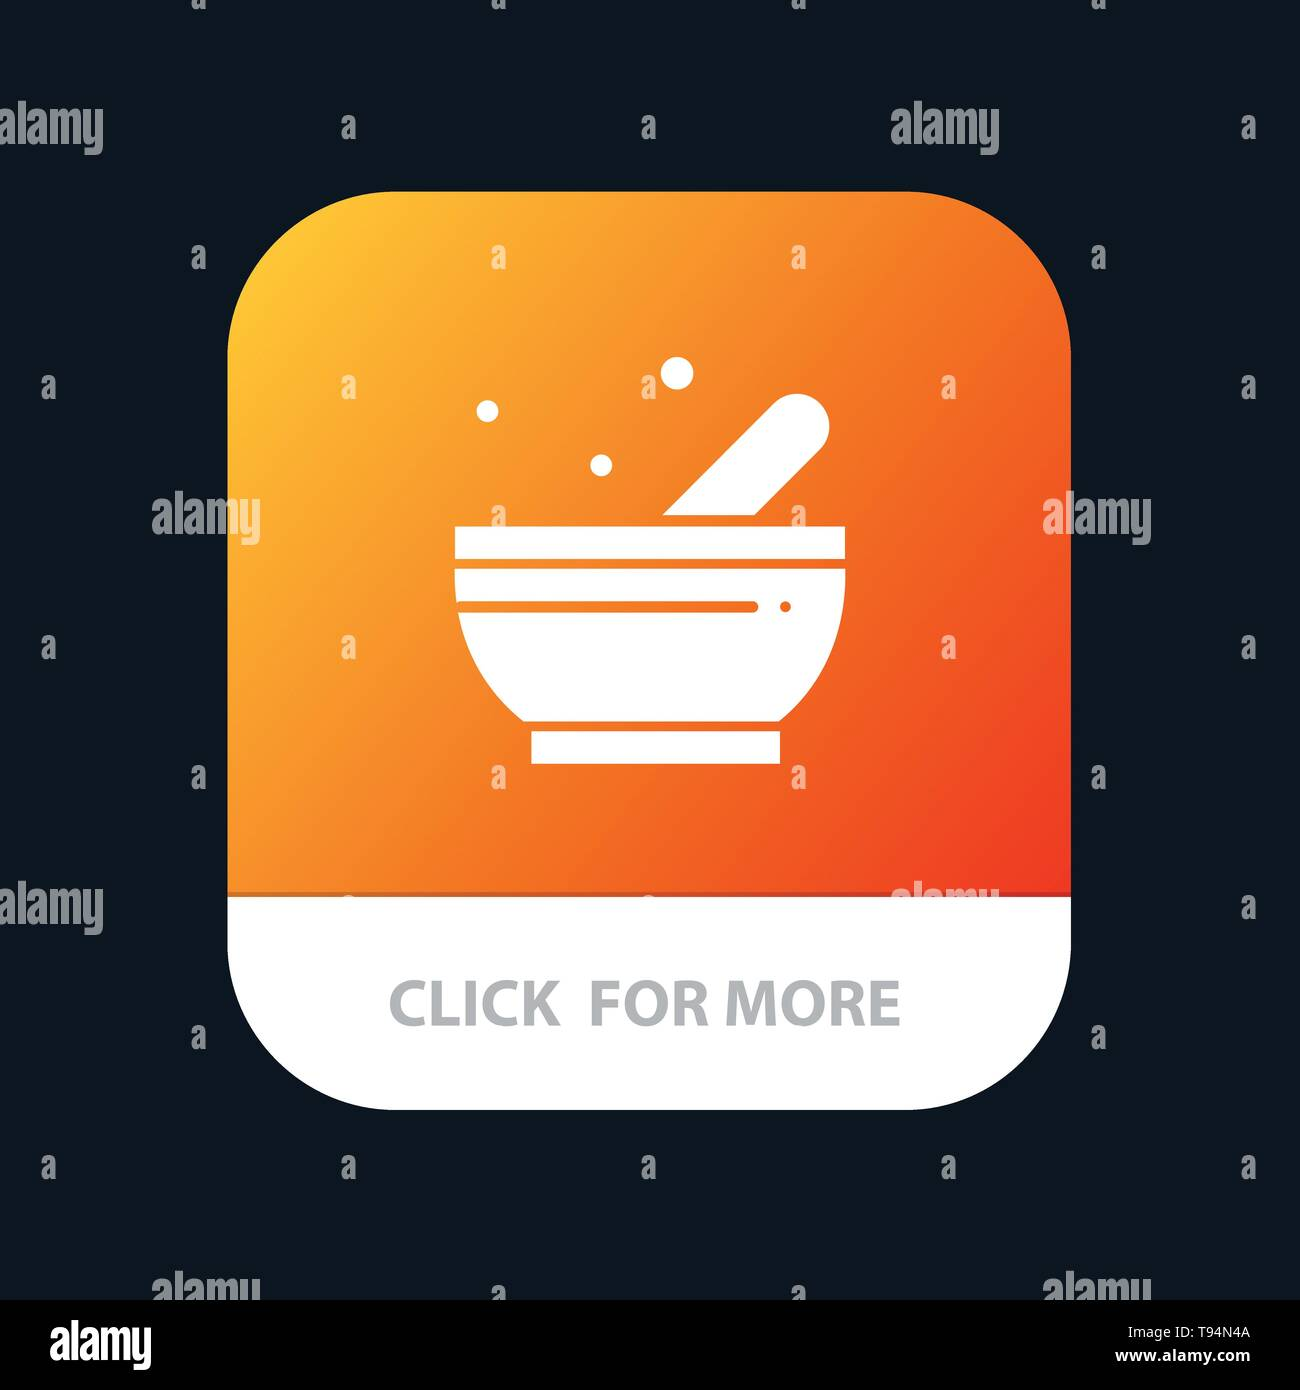 Bowl, Soup, Science Mobile App Button  Android and IOS Glyph Version